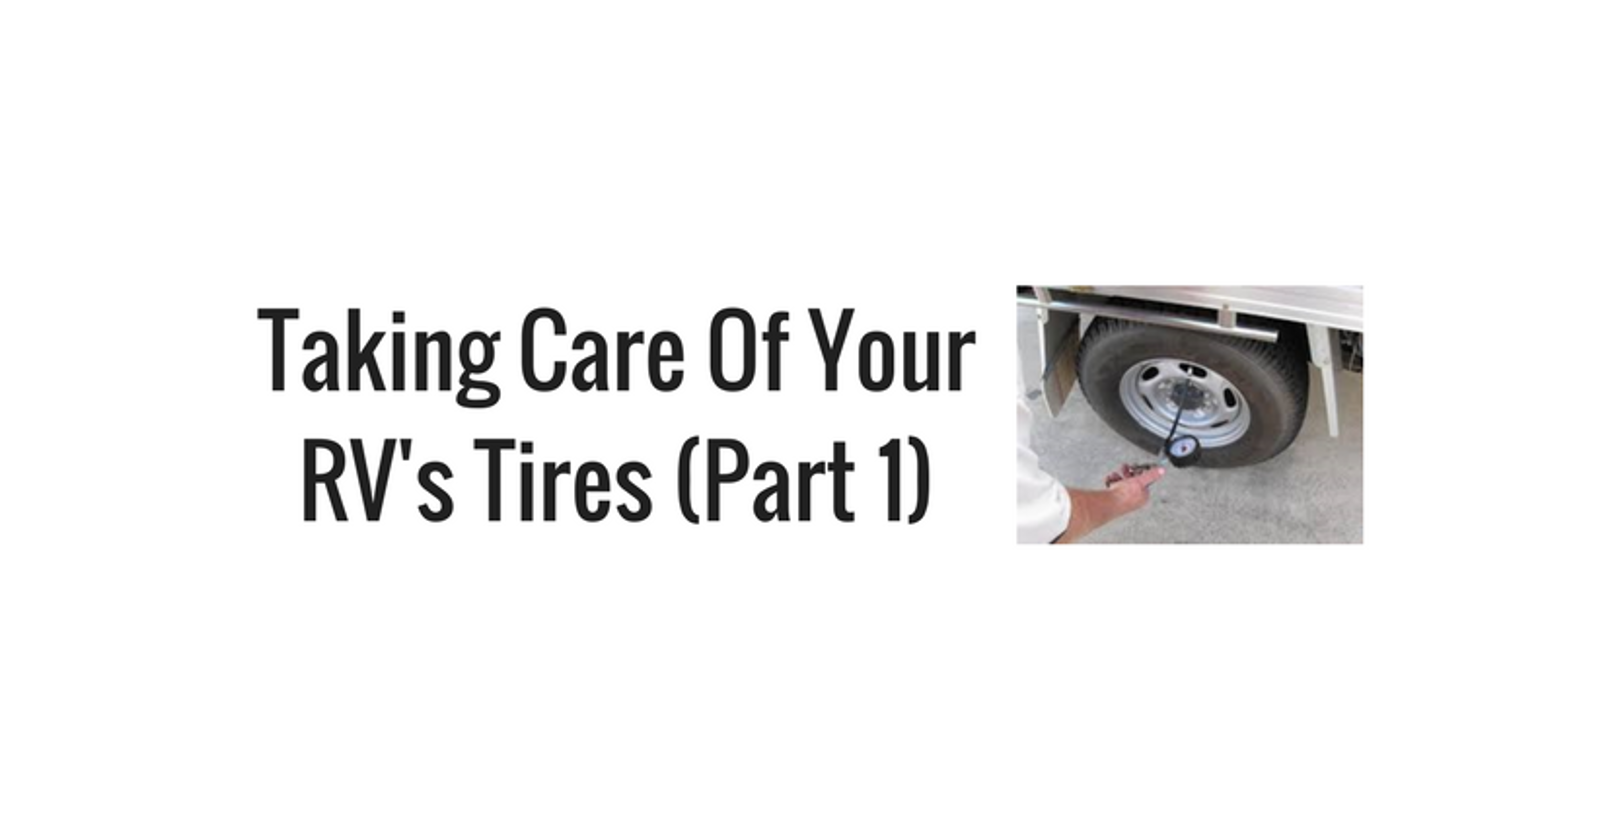 Taking Care of your RV's Tires   (Part 1)